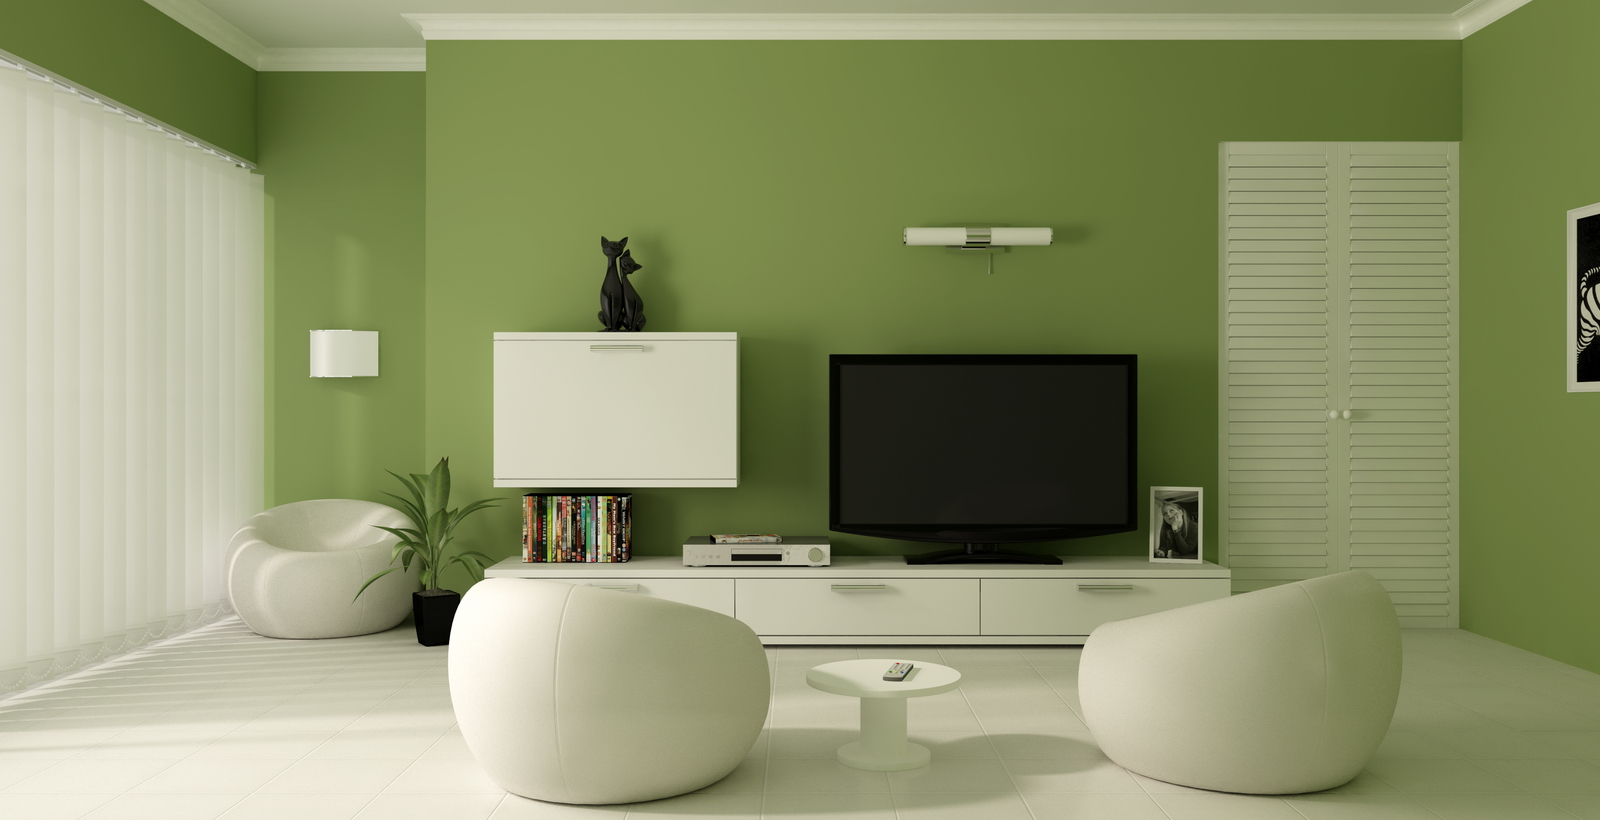 wall paint colors designs photo - 2